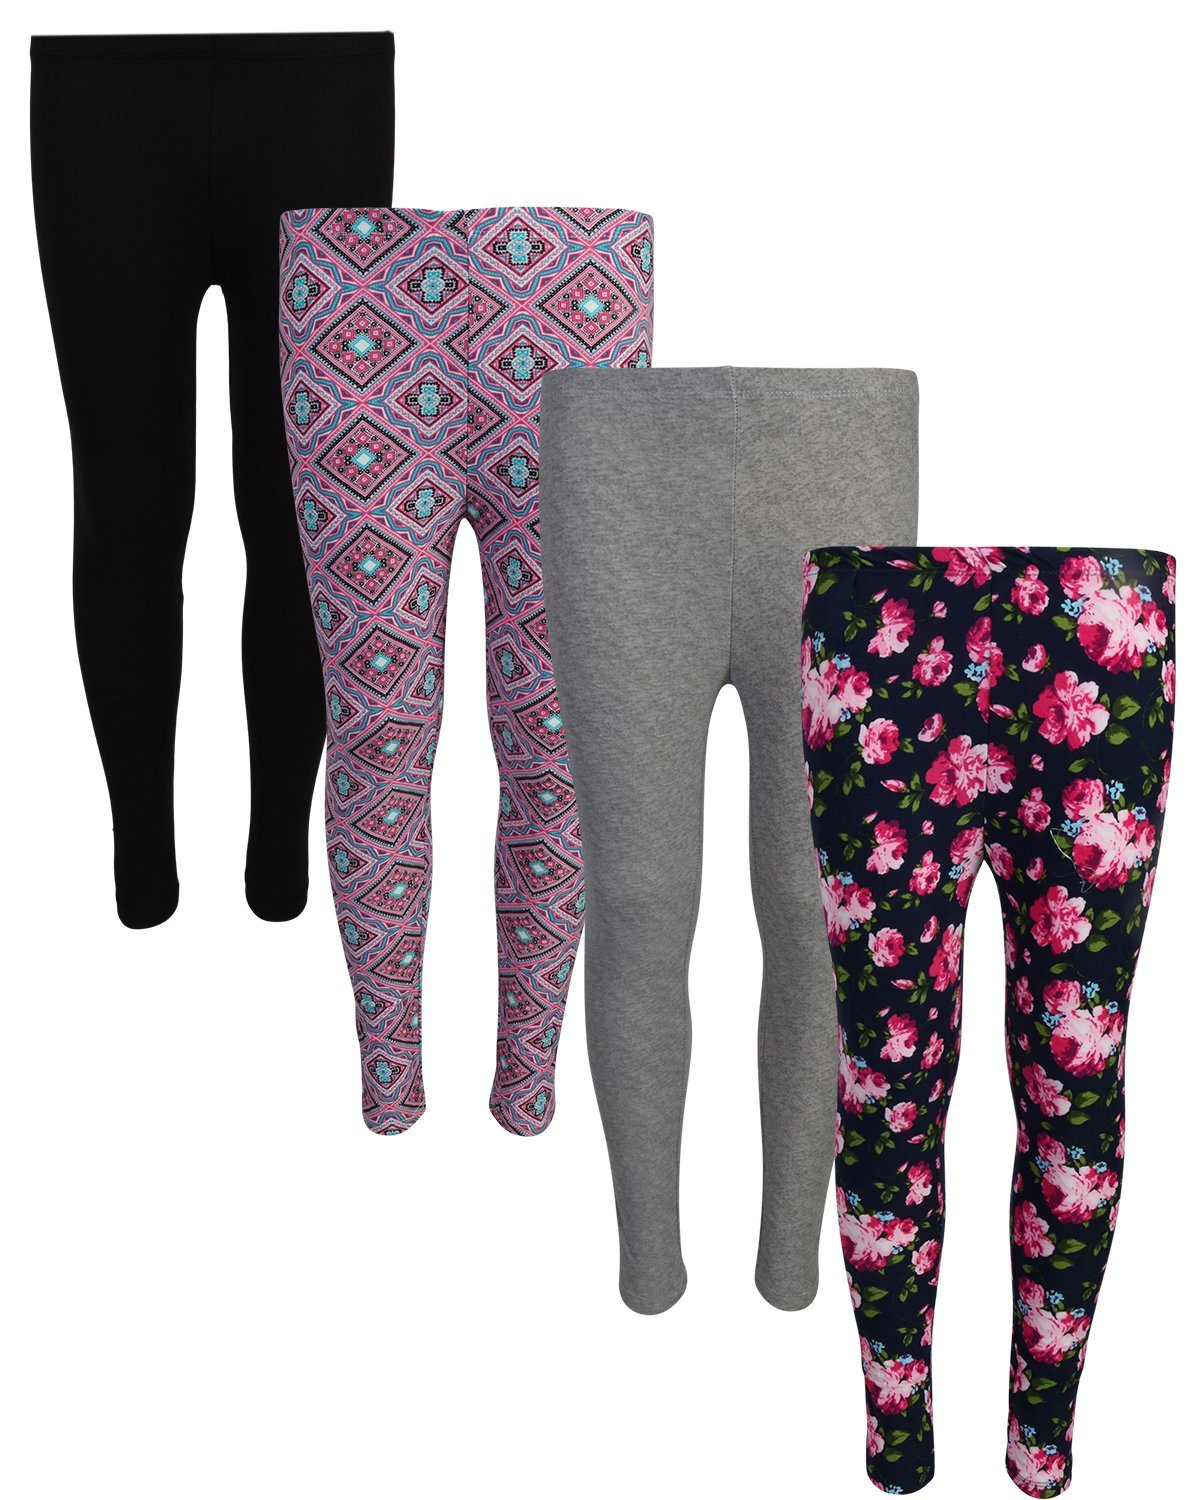 dELiA*s Delia's 4 Pack Girl's Basic Yummy Active Leggings, Navy Flower/Diamond, Size 10/12'